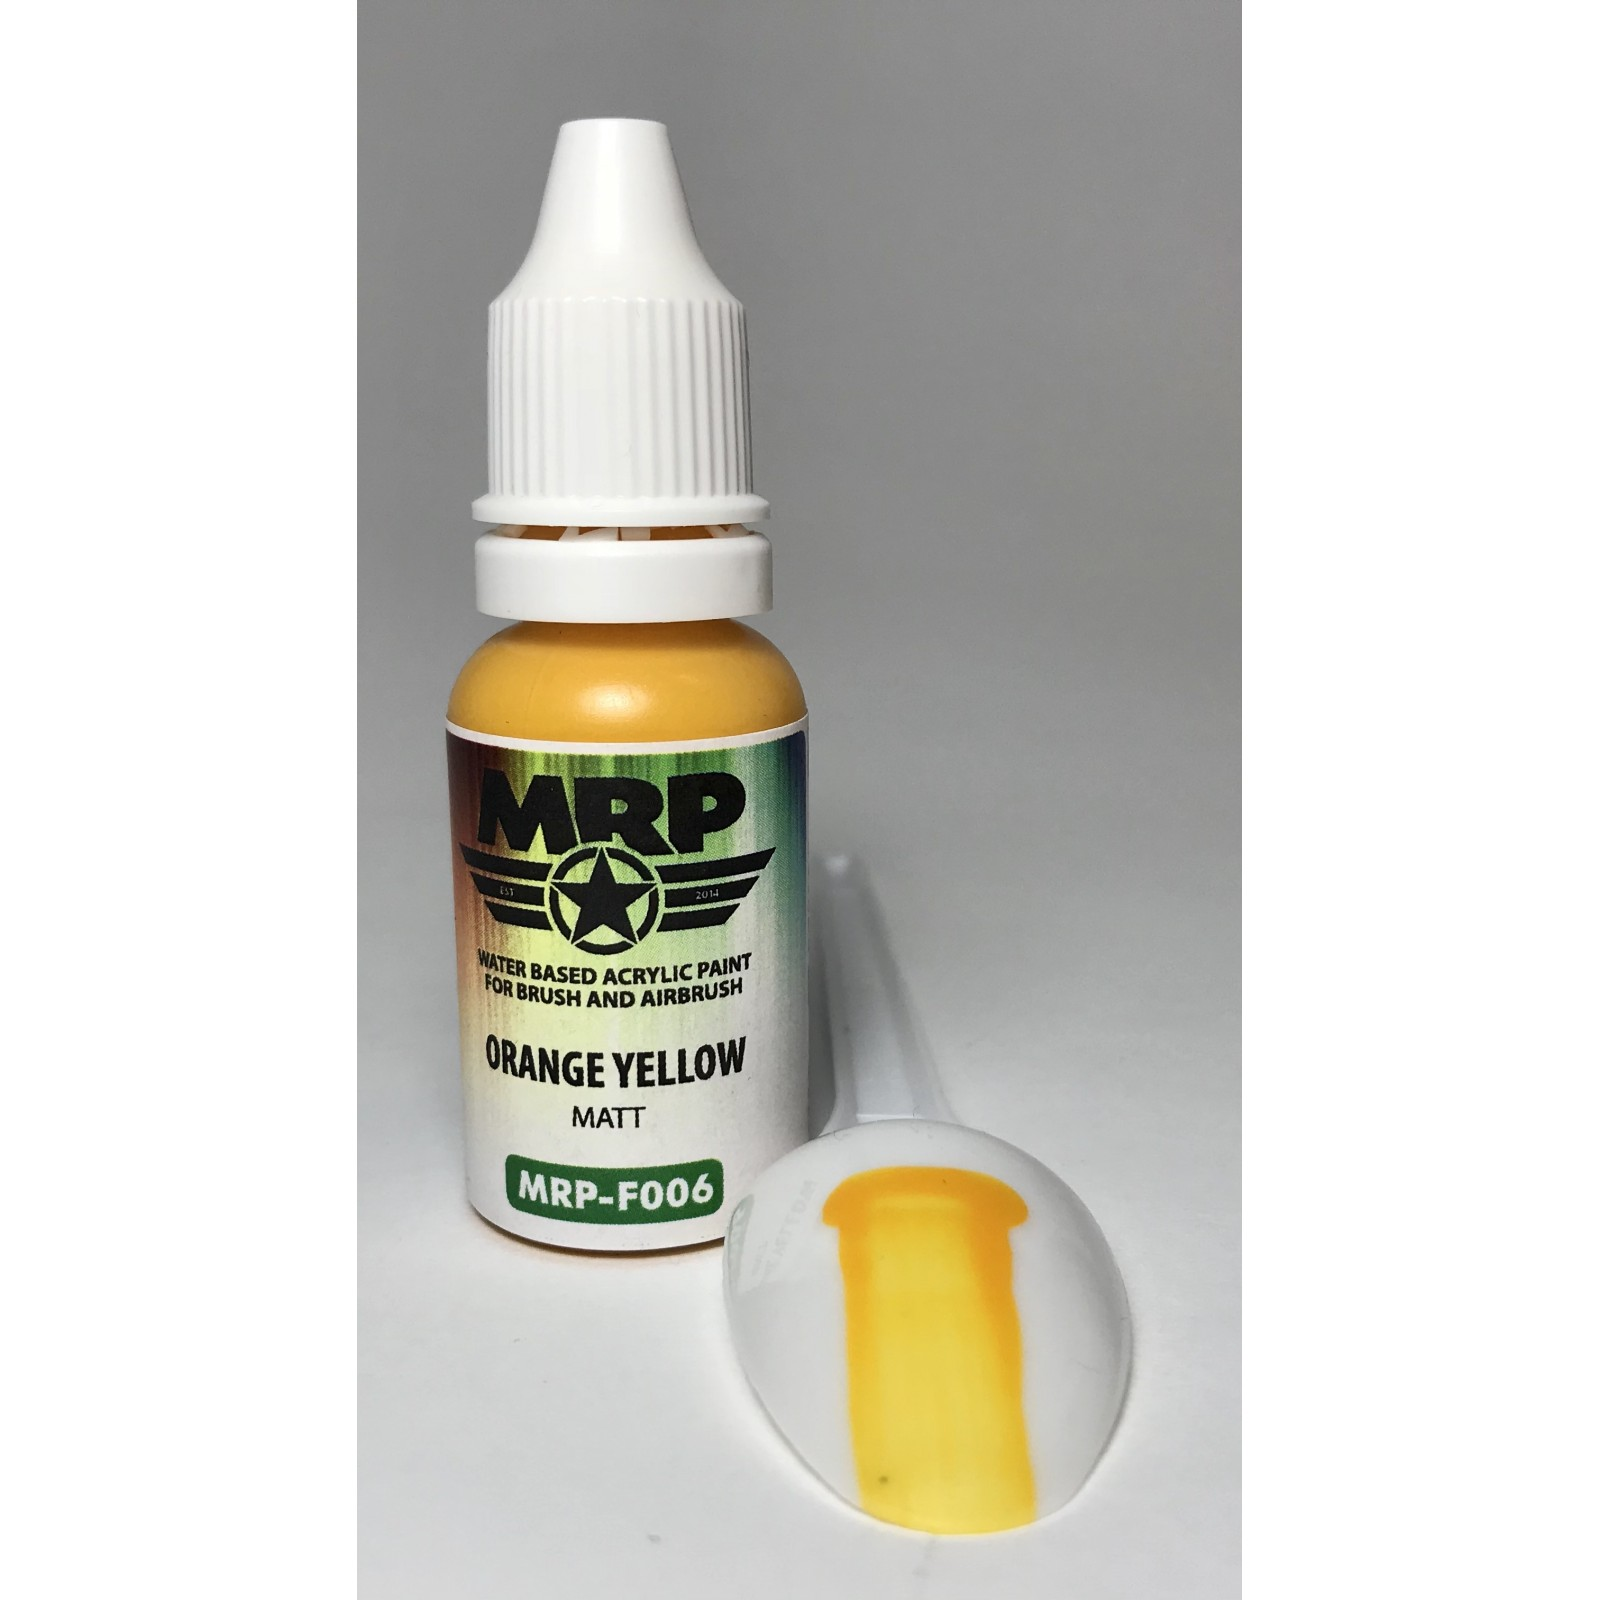 MRP-F06 Orange Yellow